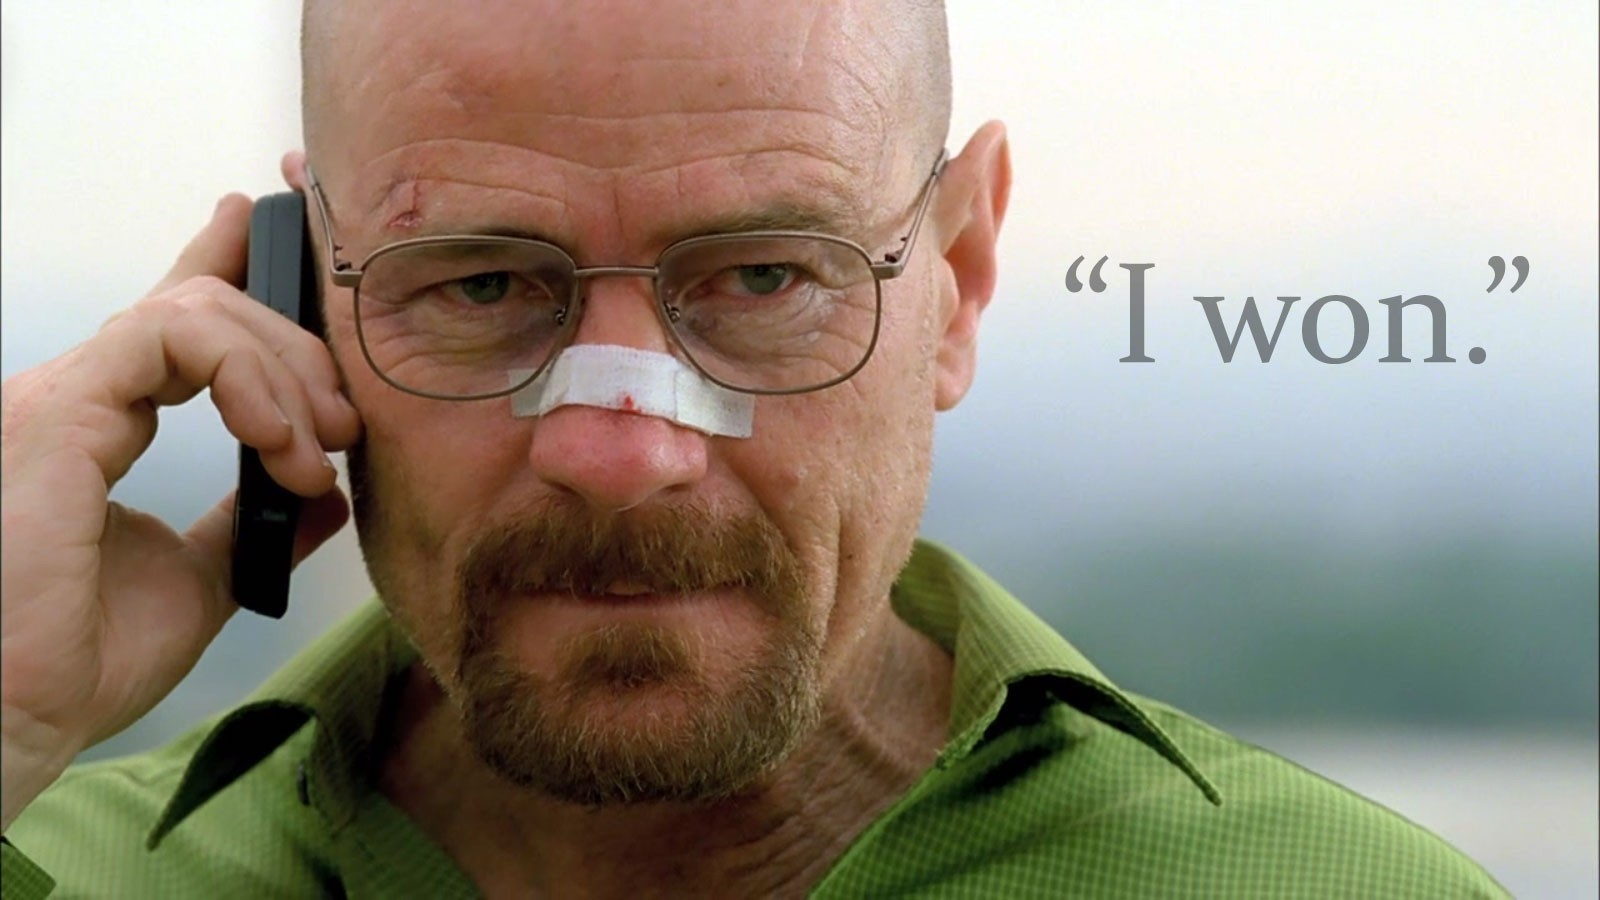 TV Breaking Bad bryan HD Wallpaper